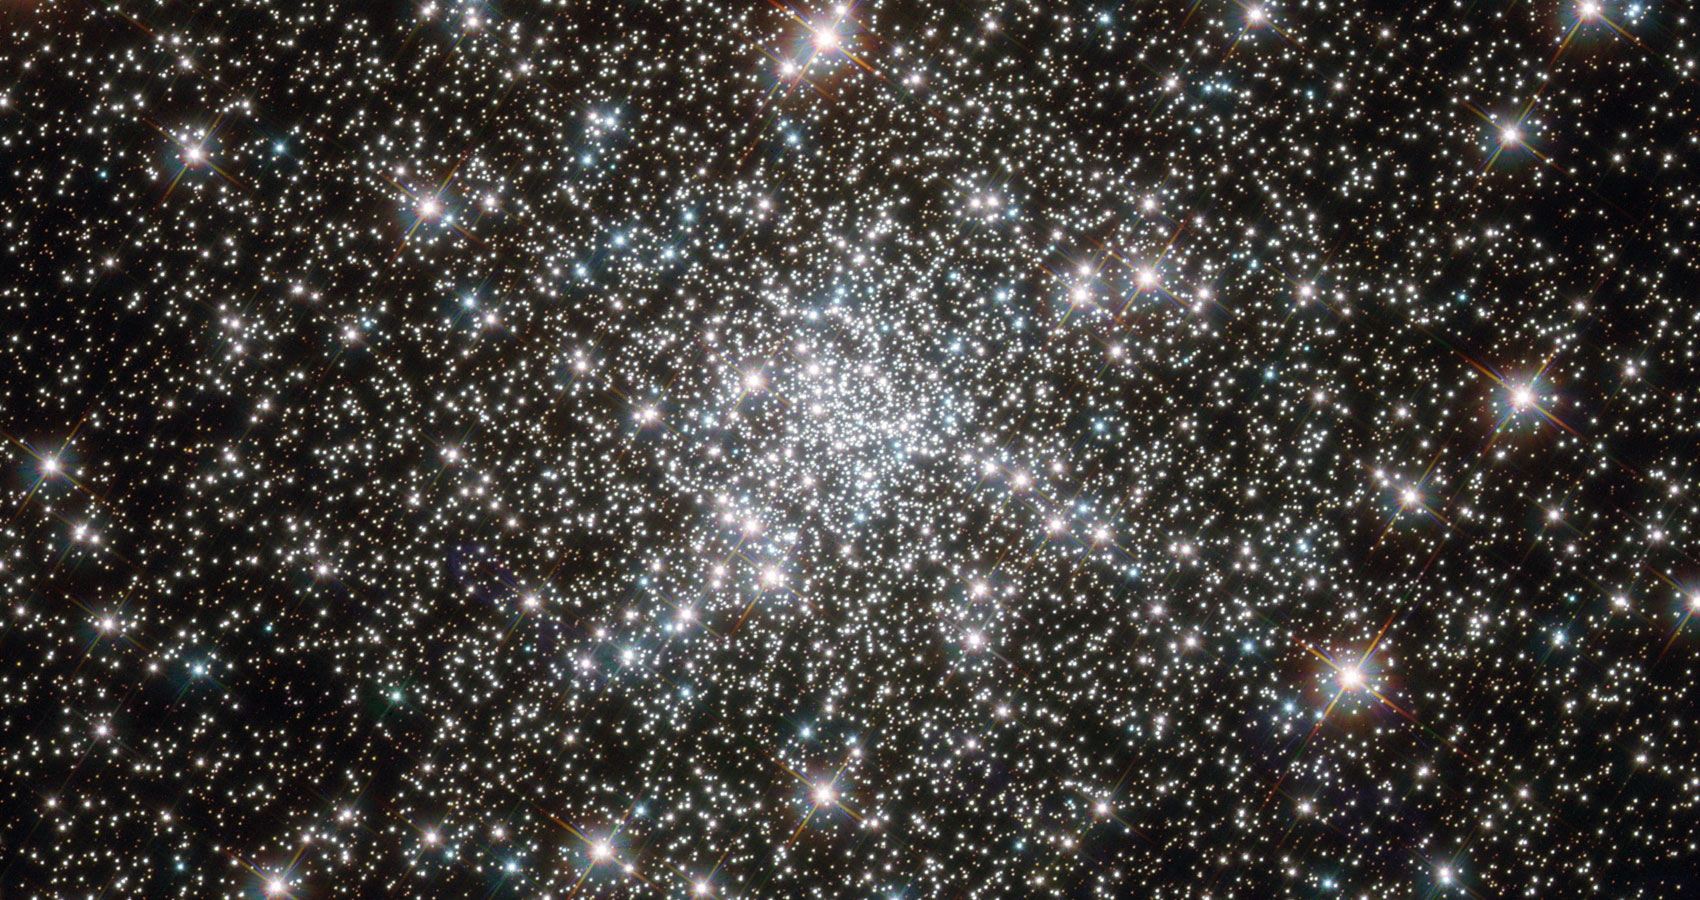 Stars, a micropoem written by Doug Donnan at Spillwords.com